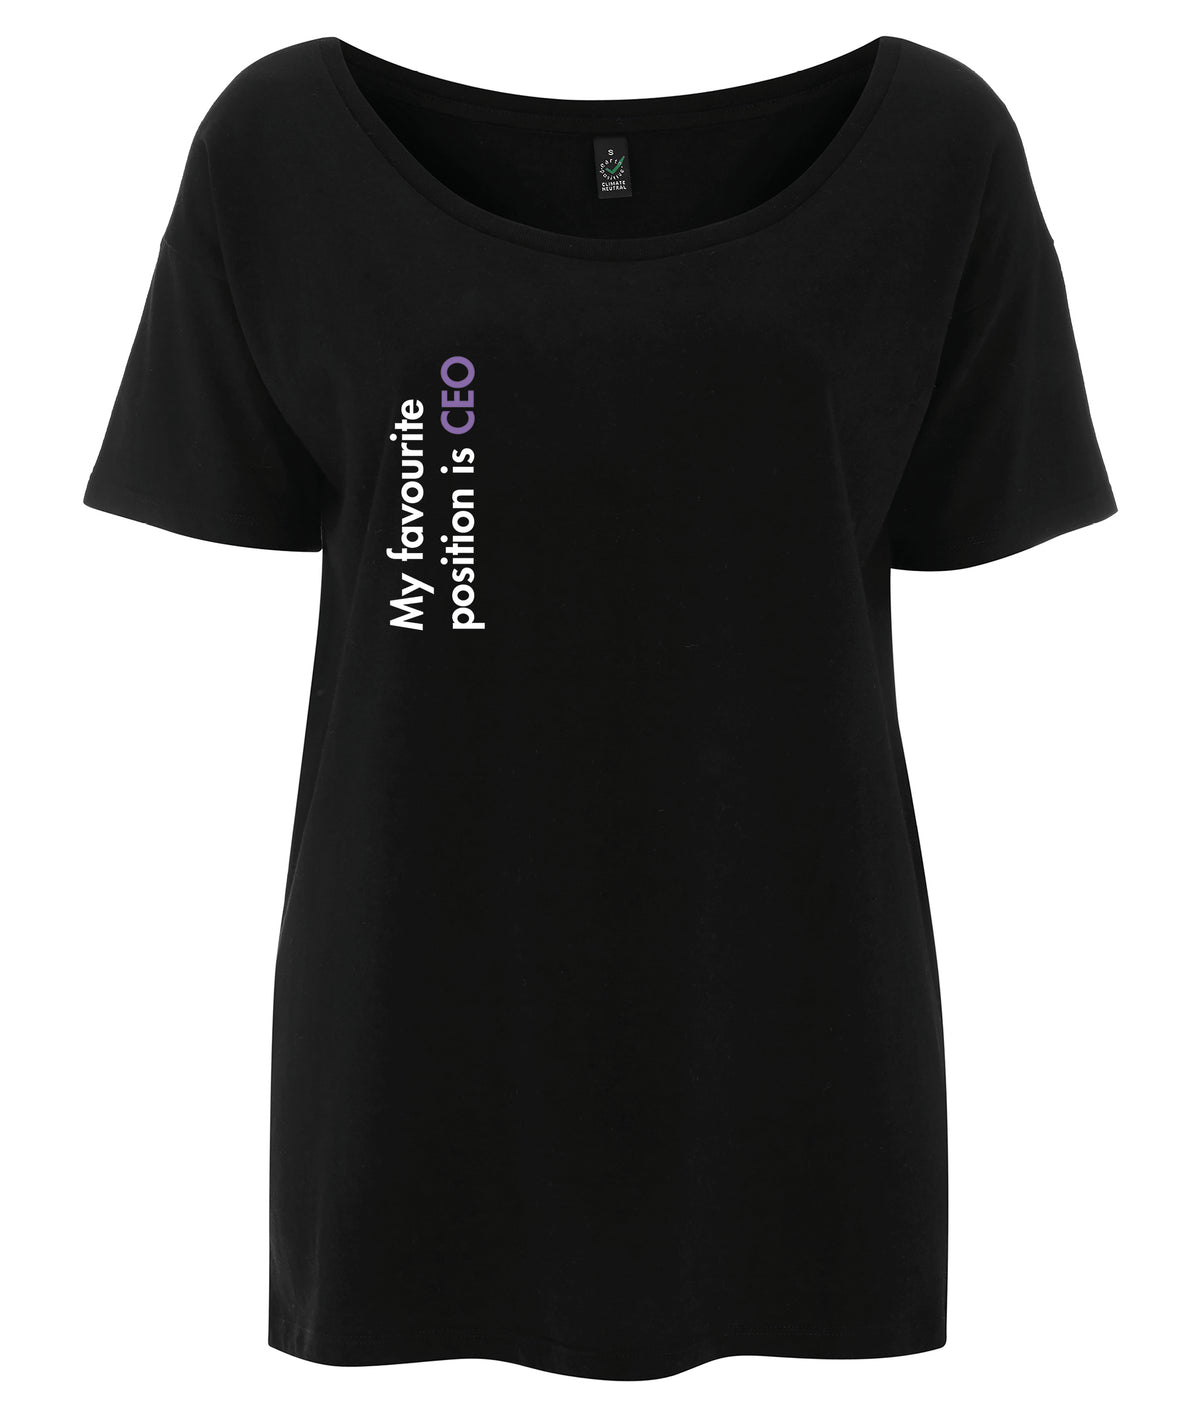 My Favourite Position Is CEO Tencel Blend Oversized Feminist T Shirt Black